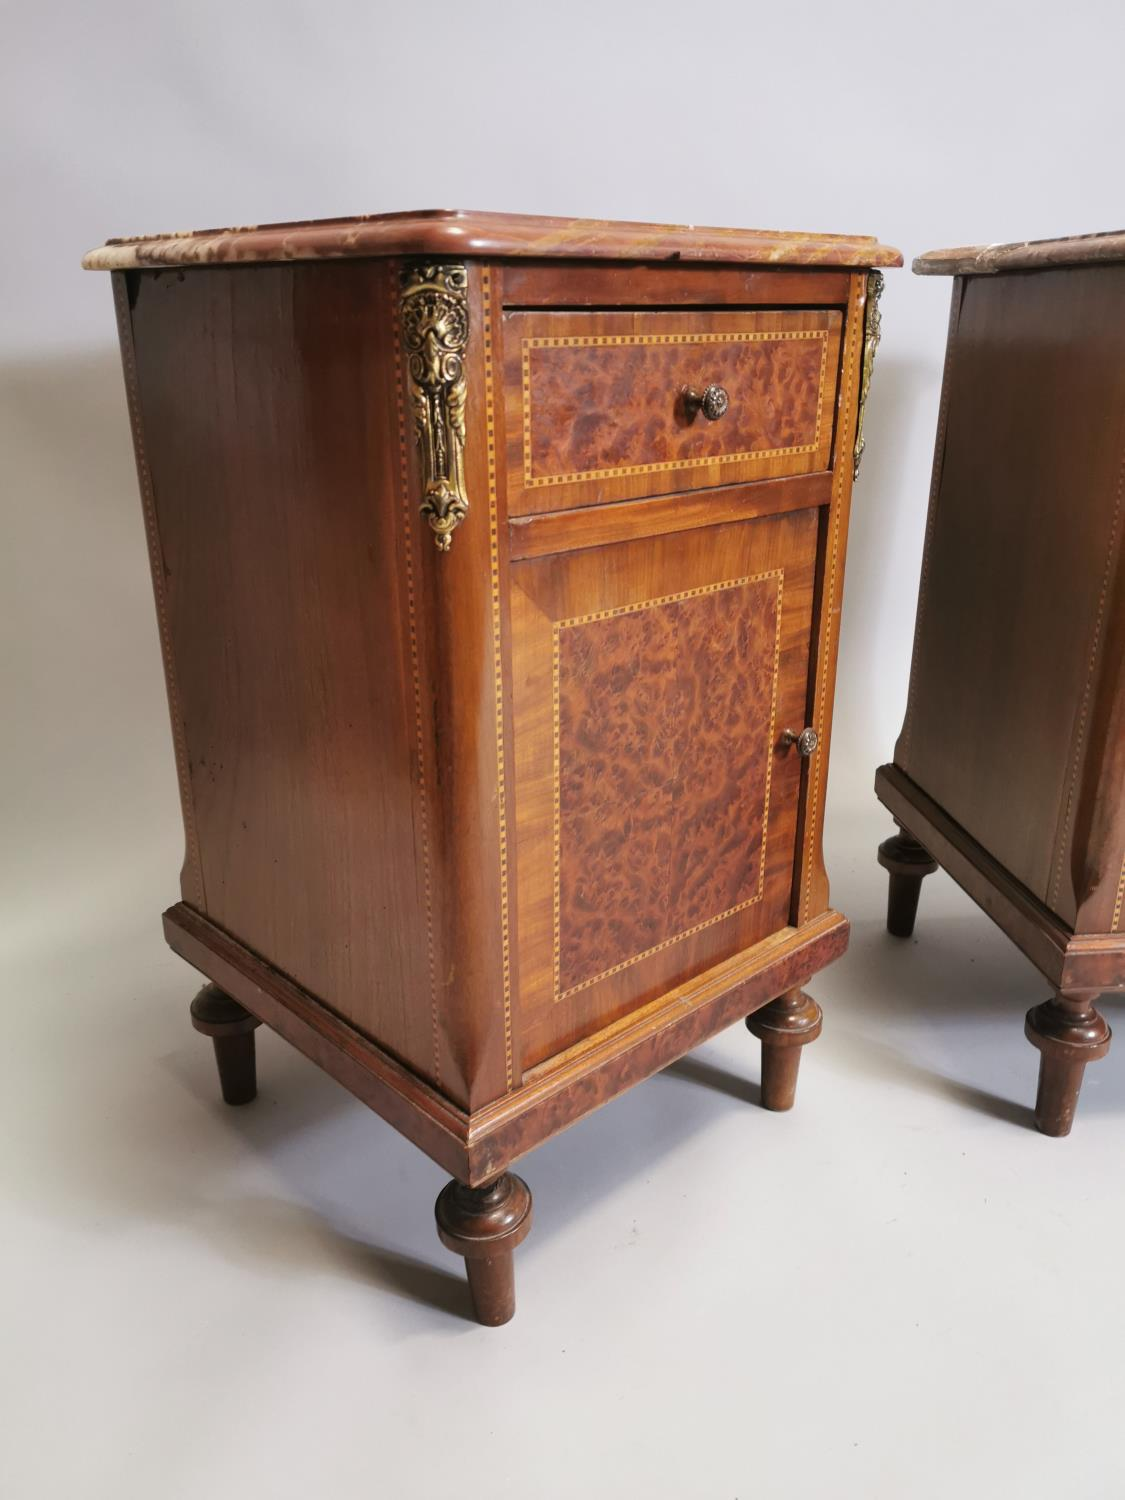 Pair of 19th. C. kingwood and burr walnut bedside lockers. - Image 5 of 8